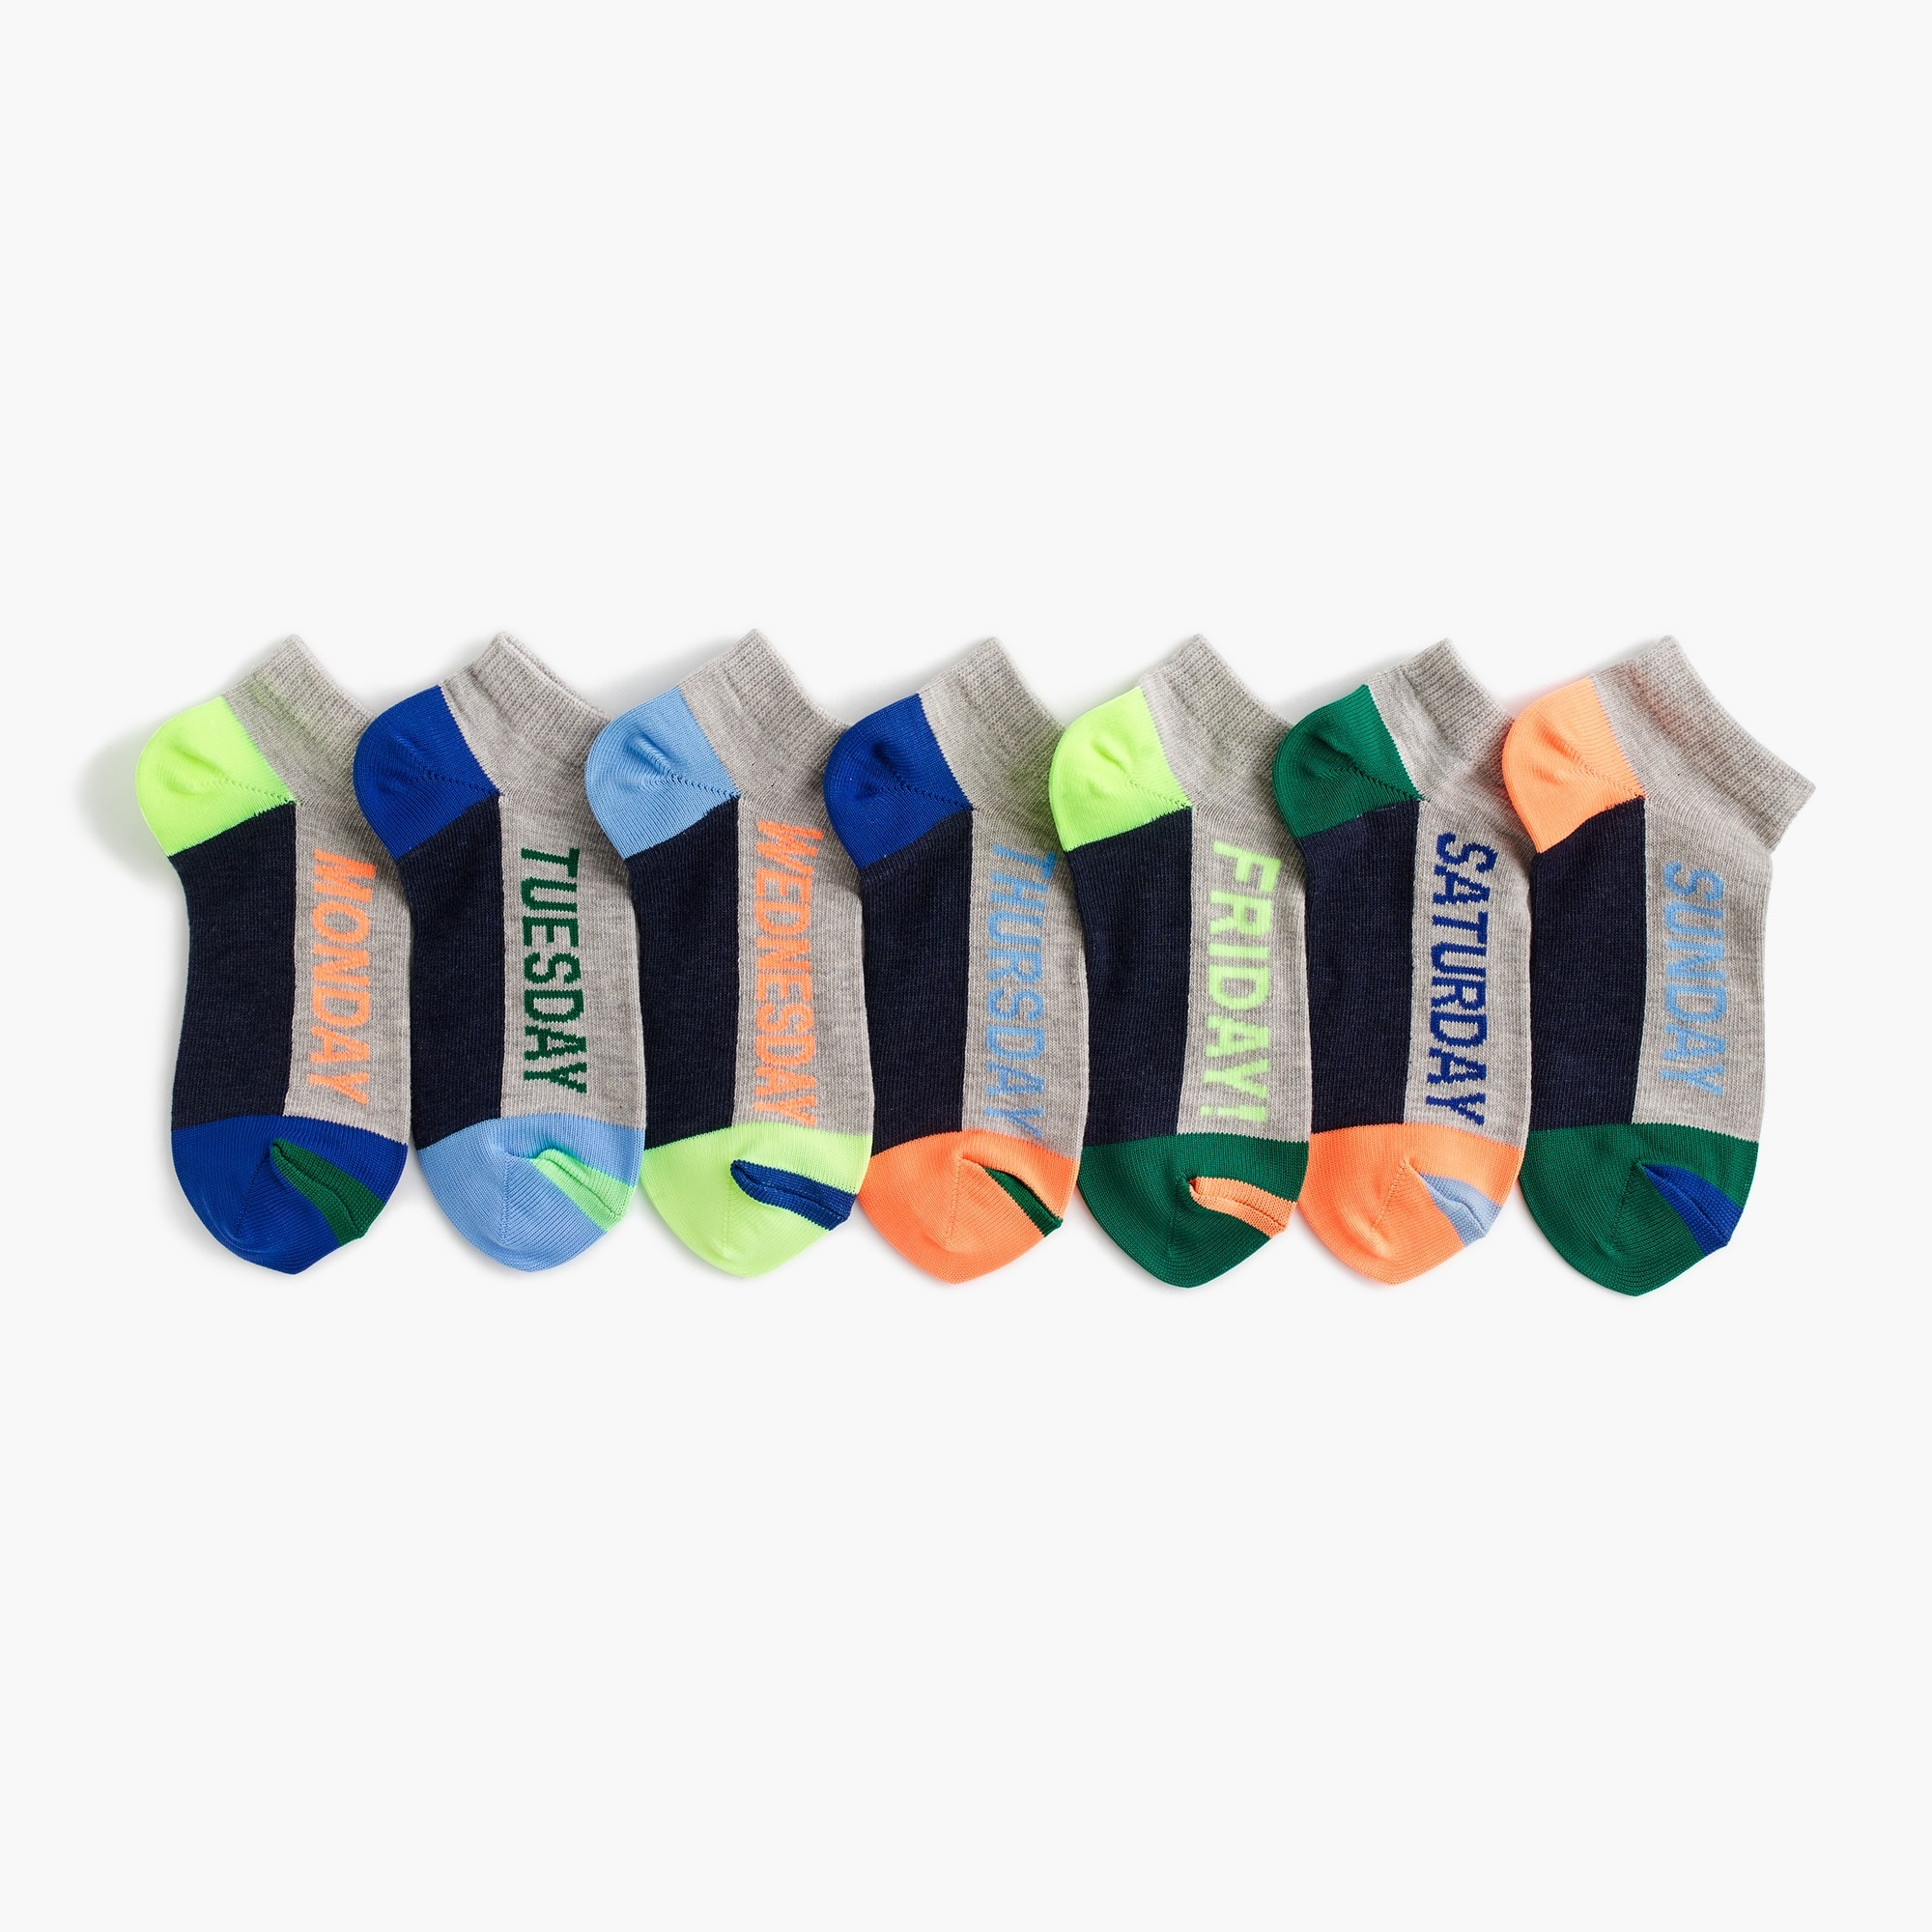 Boys' days of the week socks seven-pack